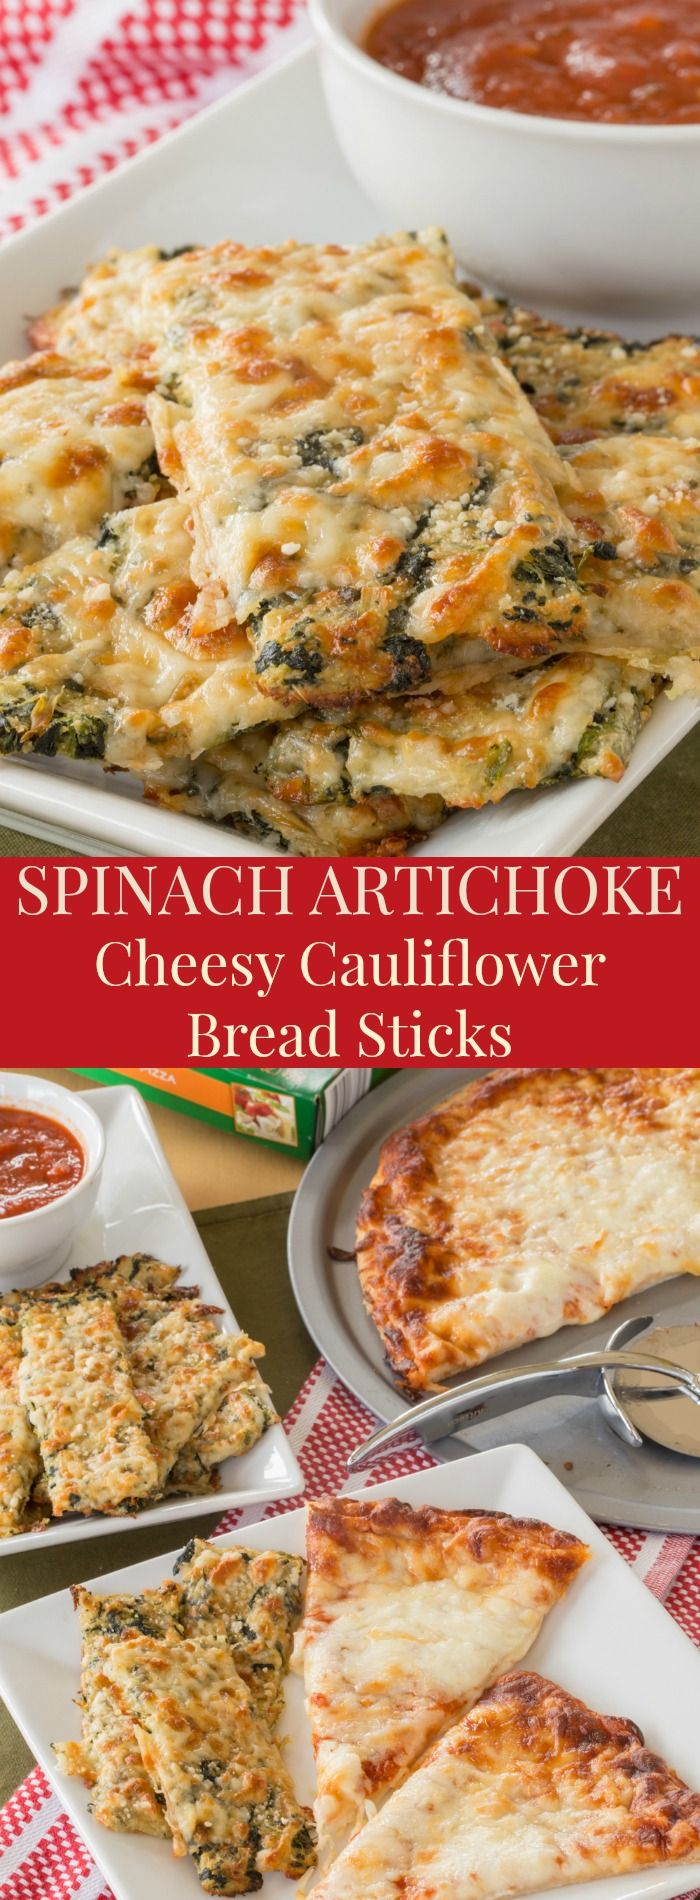 Spinach Artichoke Cheesy Cauliflower Bread Sticks - pack veggies and cheese into this side dish or appetizer recipe inspired by everyone's favorite spinach artichoke dip for a gluten free snack that's fun to eat. Gluten free, low carb, and vegetarian. #ad | cupcakesandkalechips.com